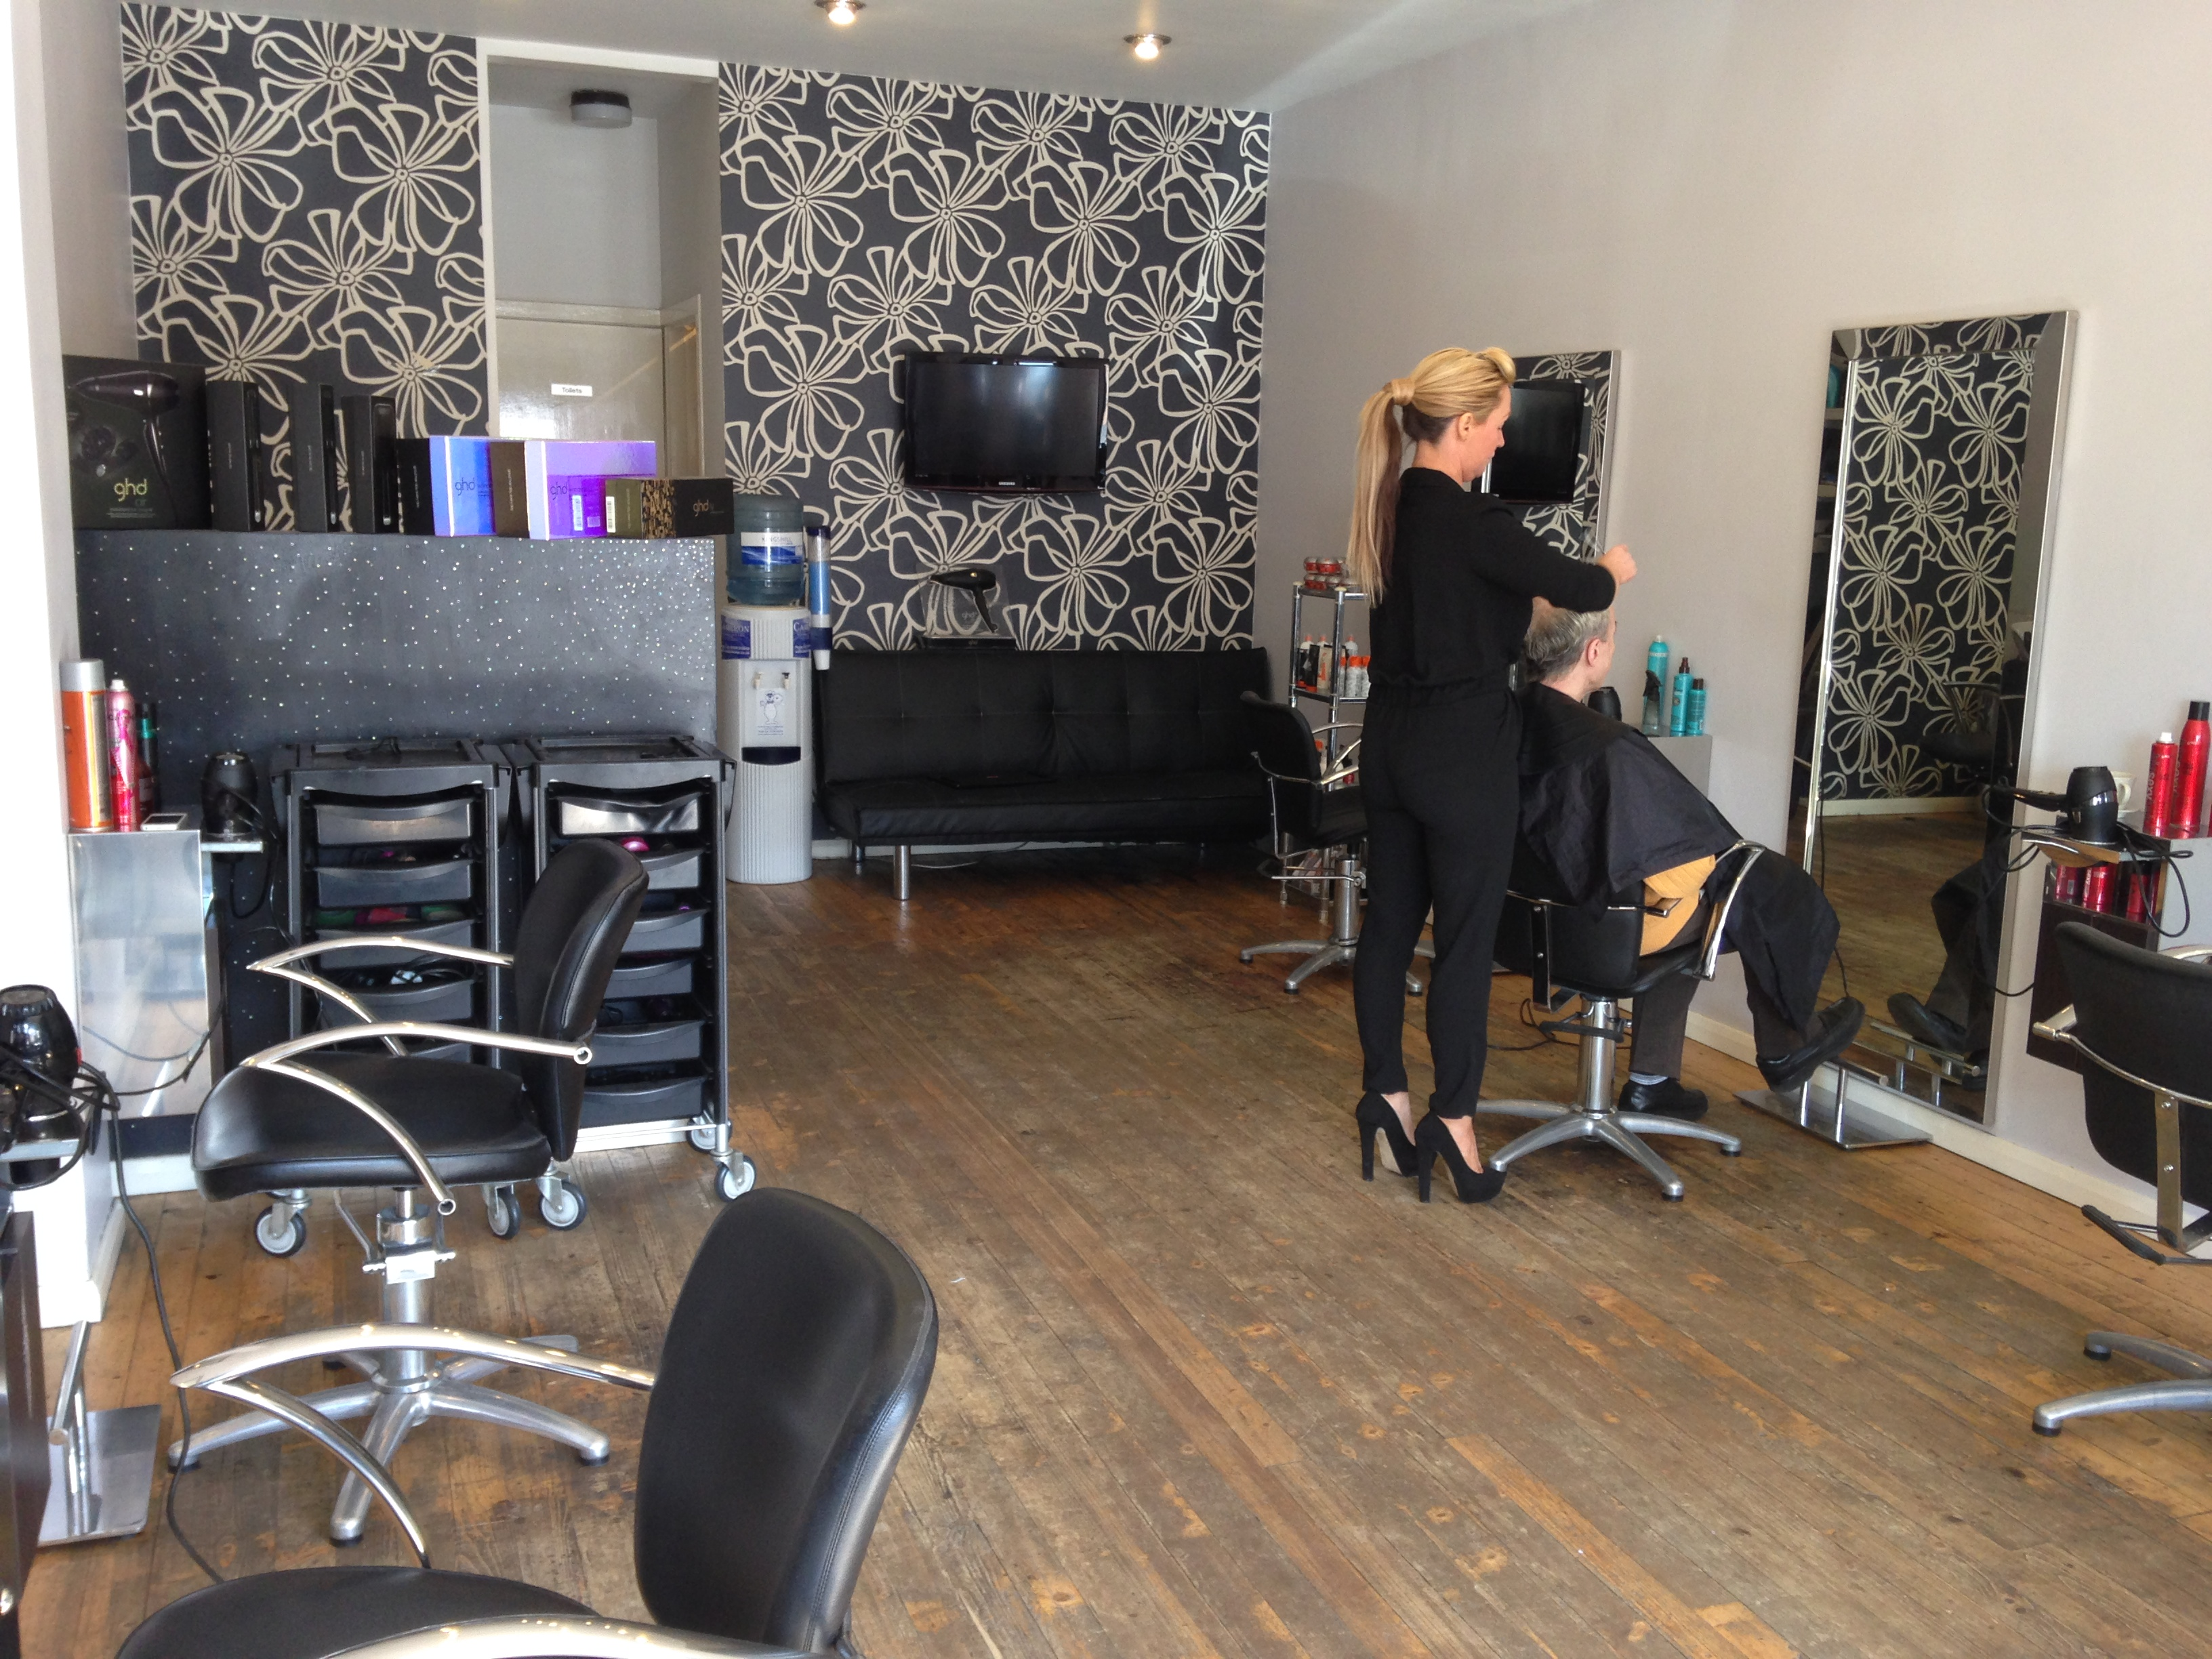 Salon Erotic Vibe Hairdressing Glasgow Health And Beauty 5pm Co Uk